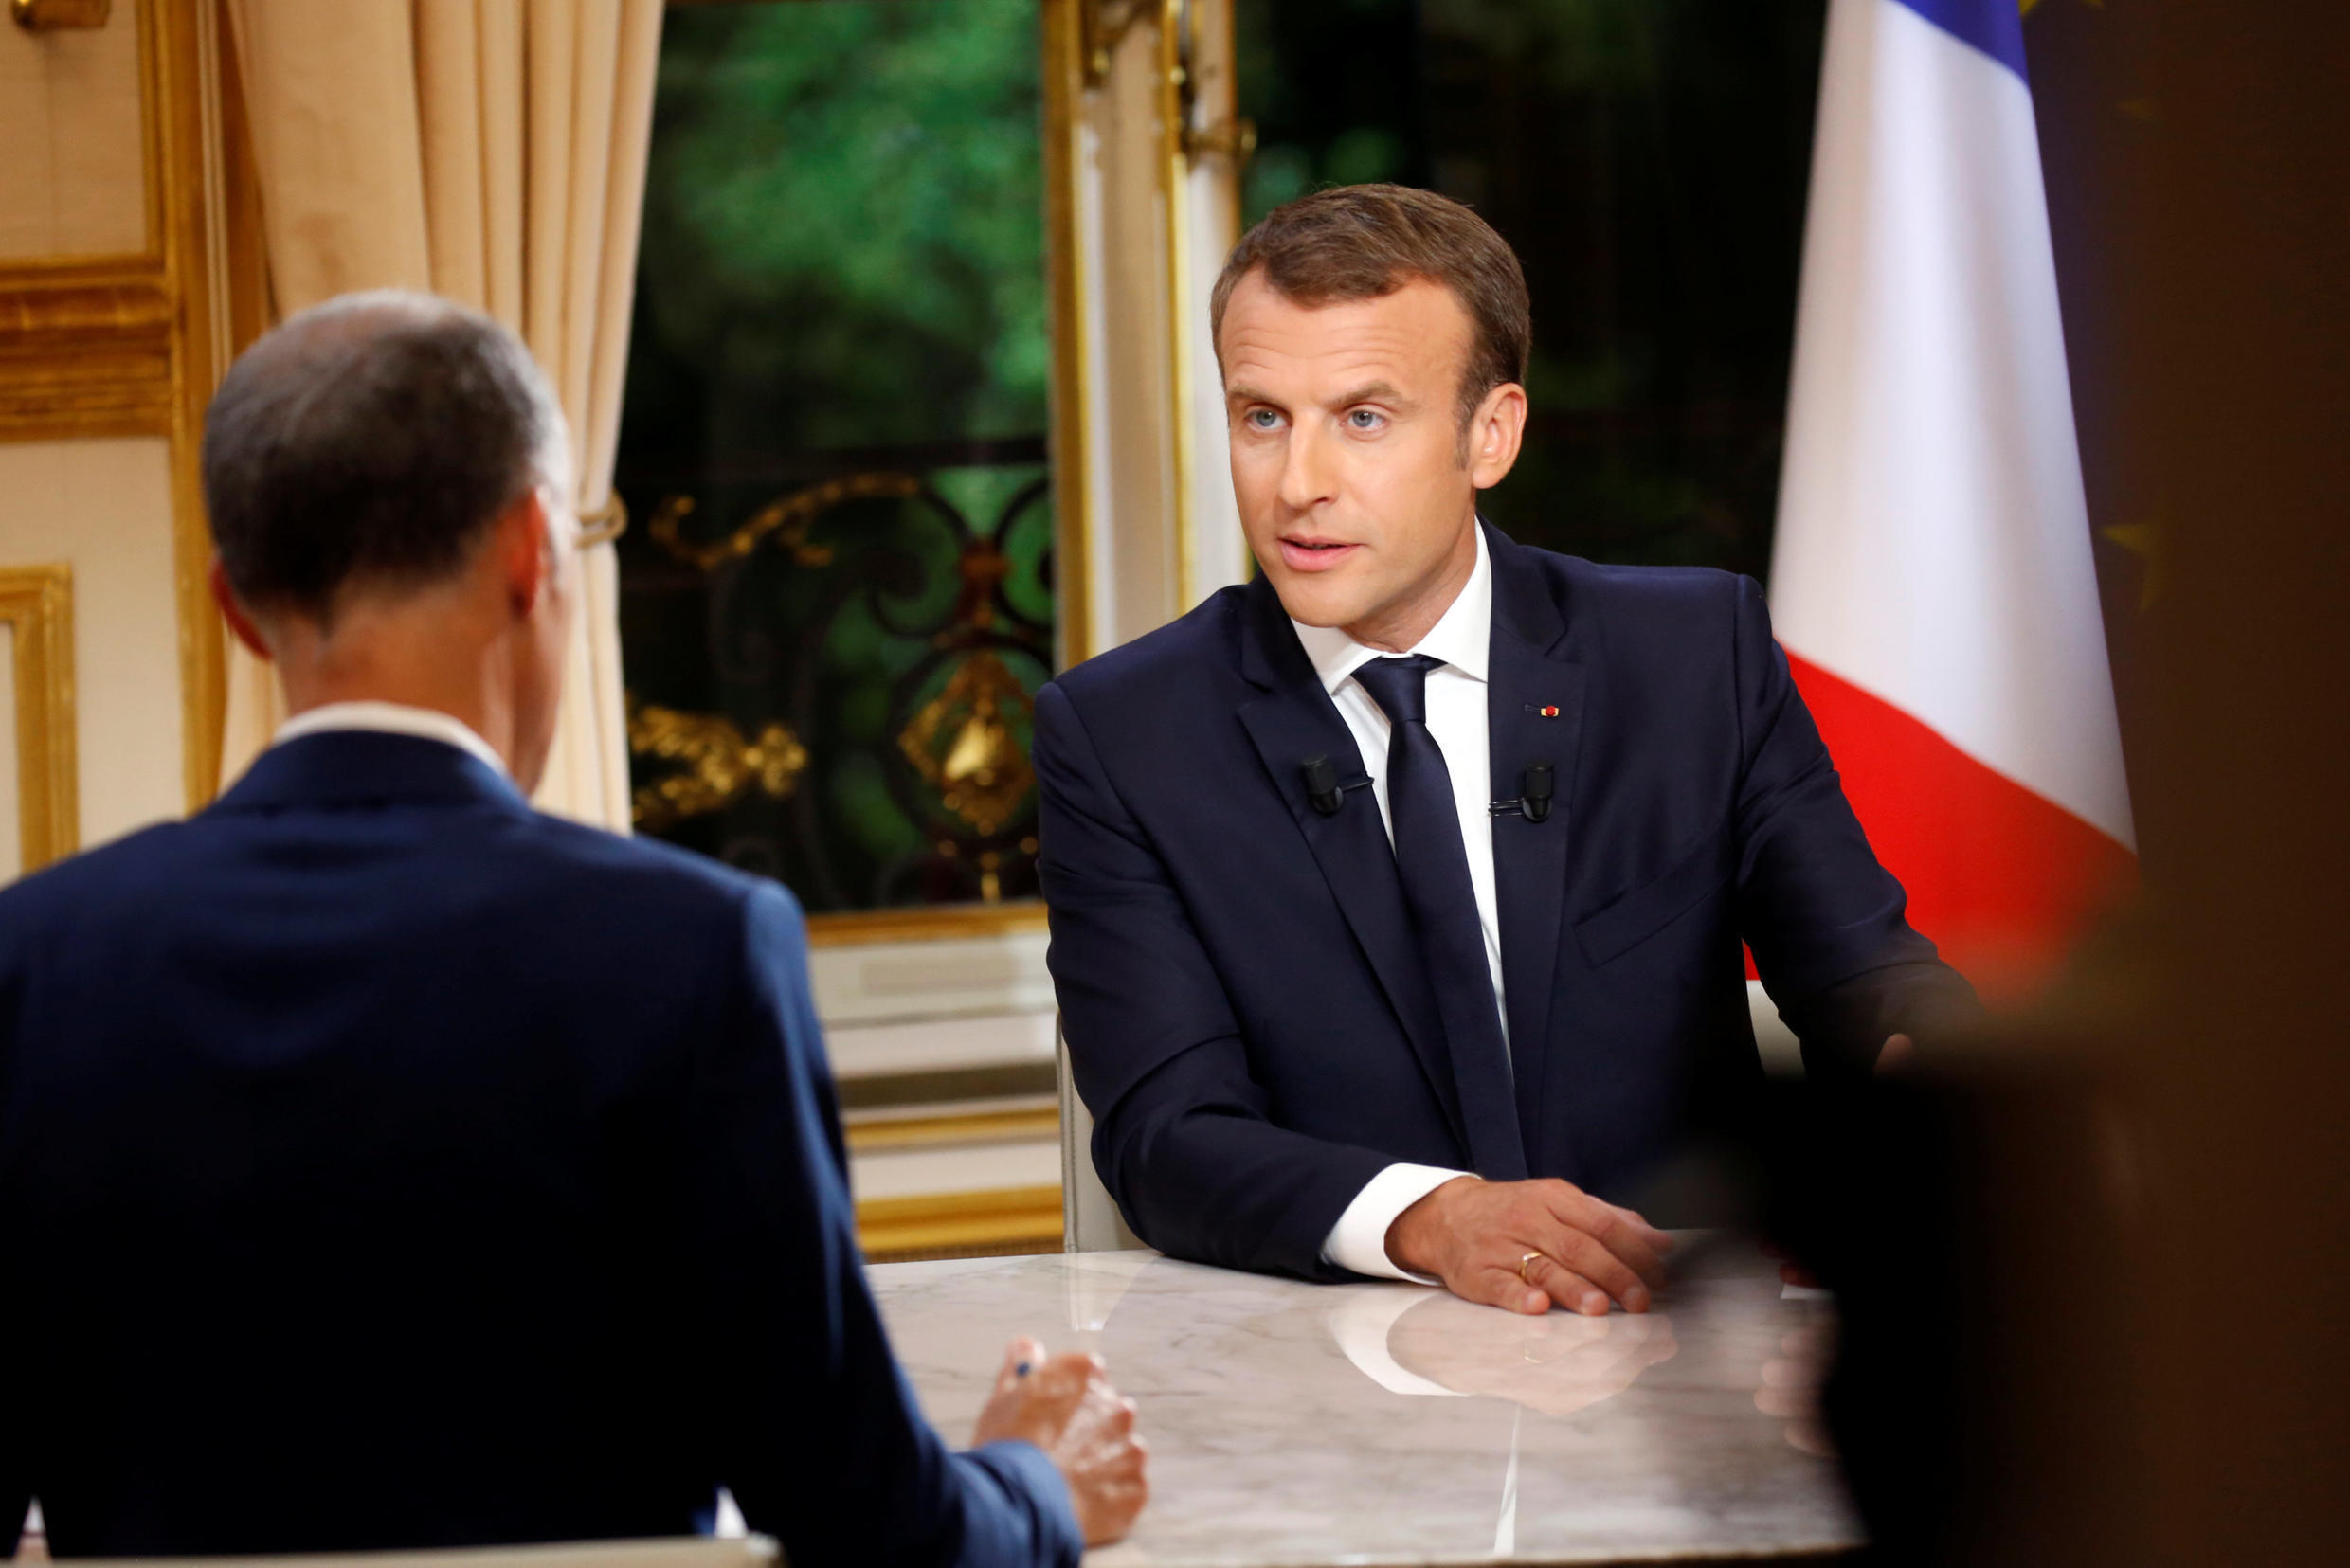 French President Emmanuel Macron is seen during his first long live television interview on prime time at the Elysee Palace in Paris, France, October 15, 2017.